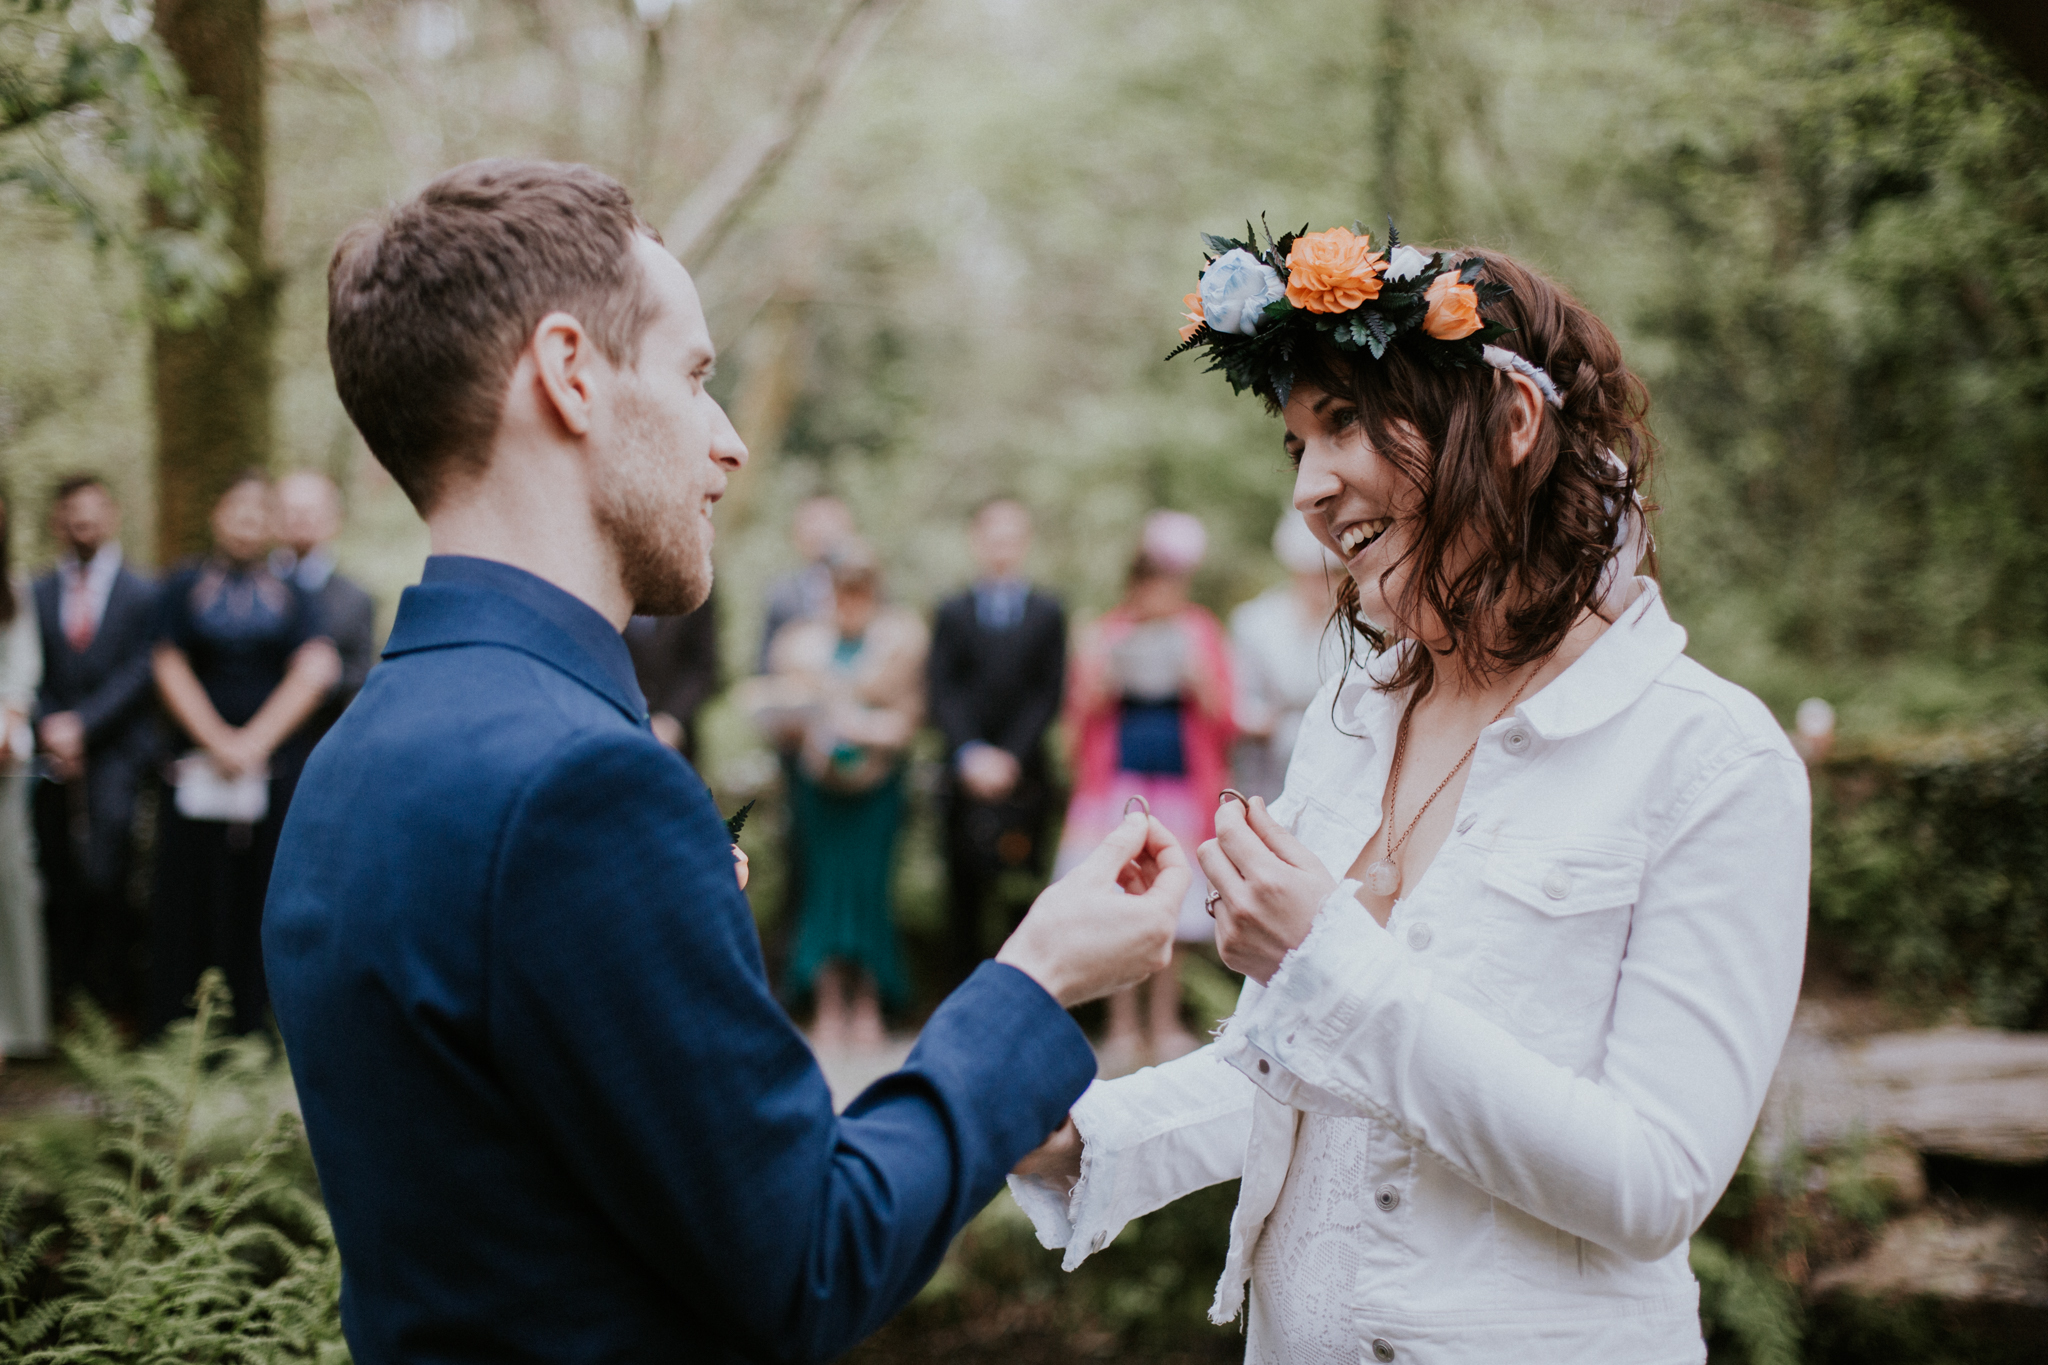 The couple is exchanging the rings at the outdoor ceremony of the Inish Beg Estate in Ireland